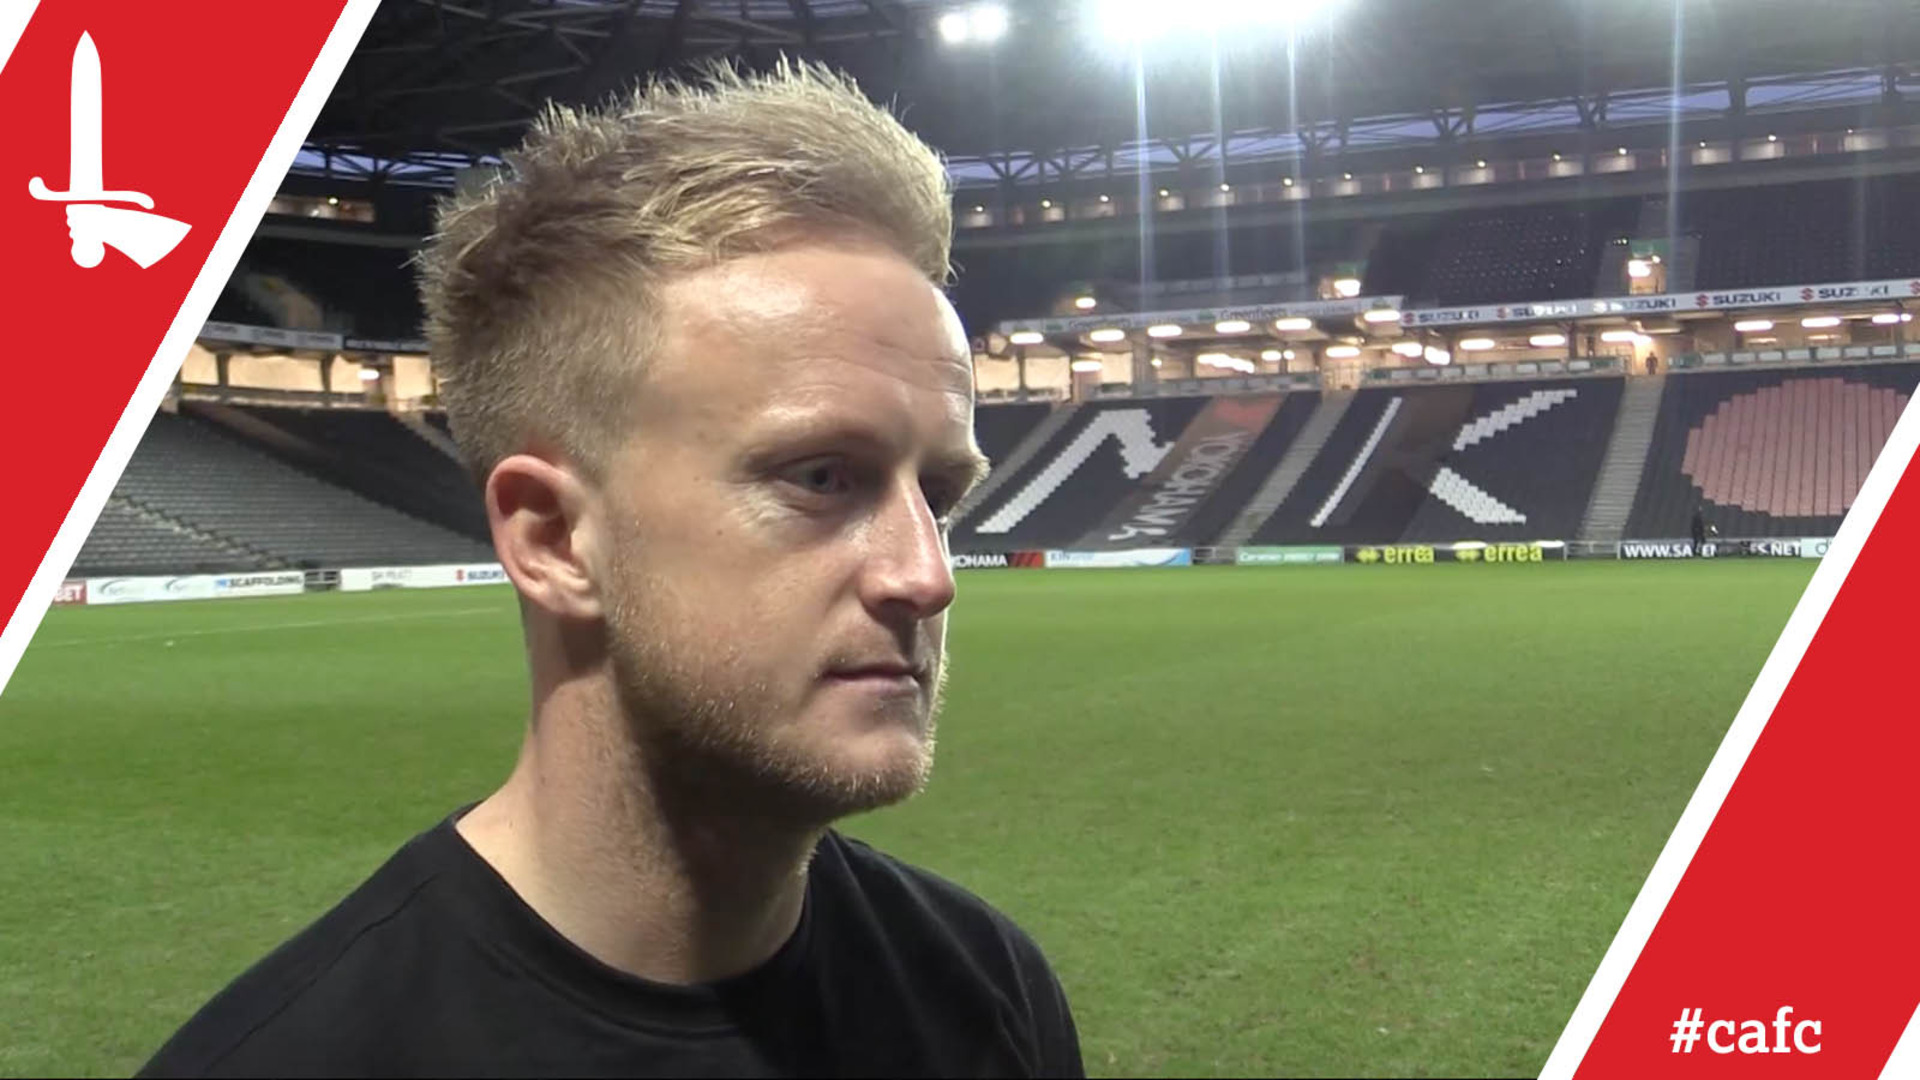 Ben Reeves delighted to win against former club MK Dons